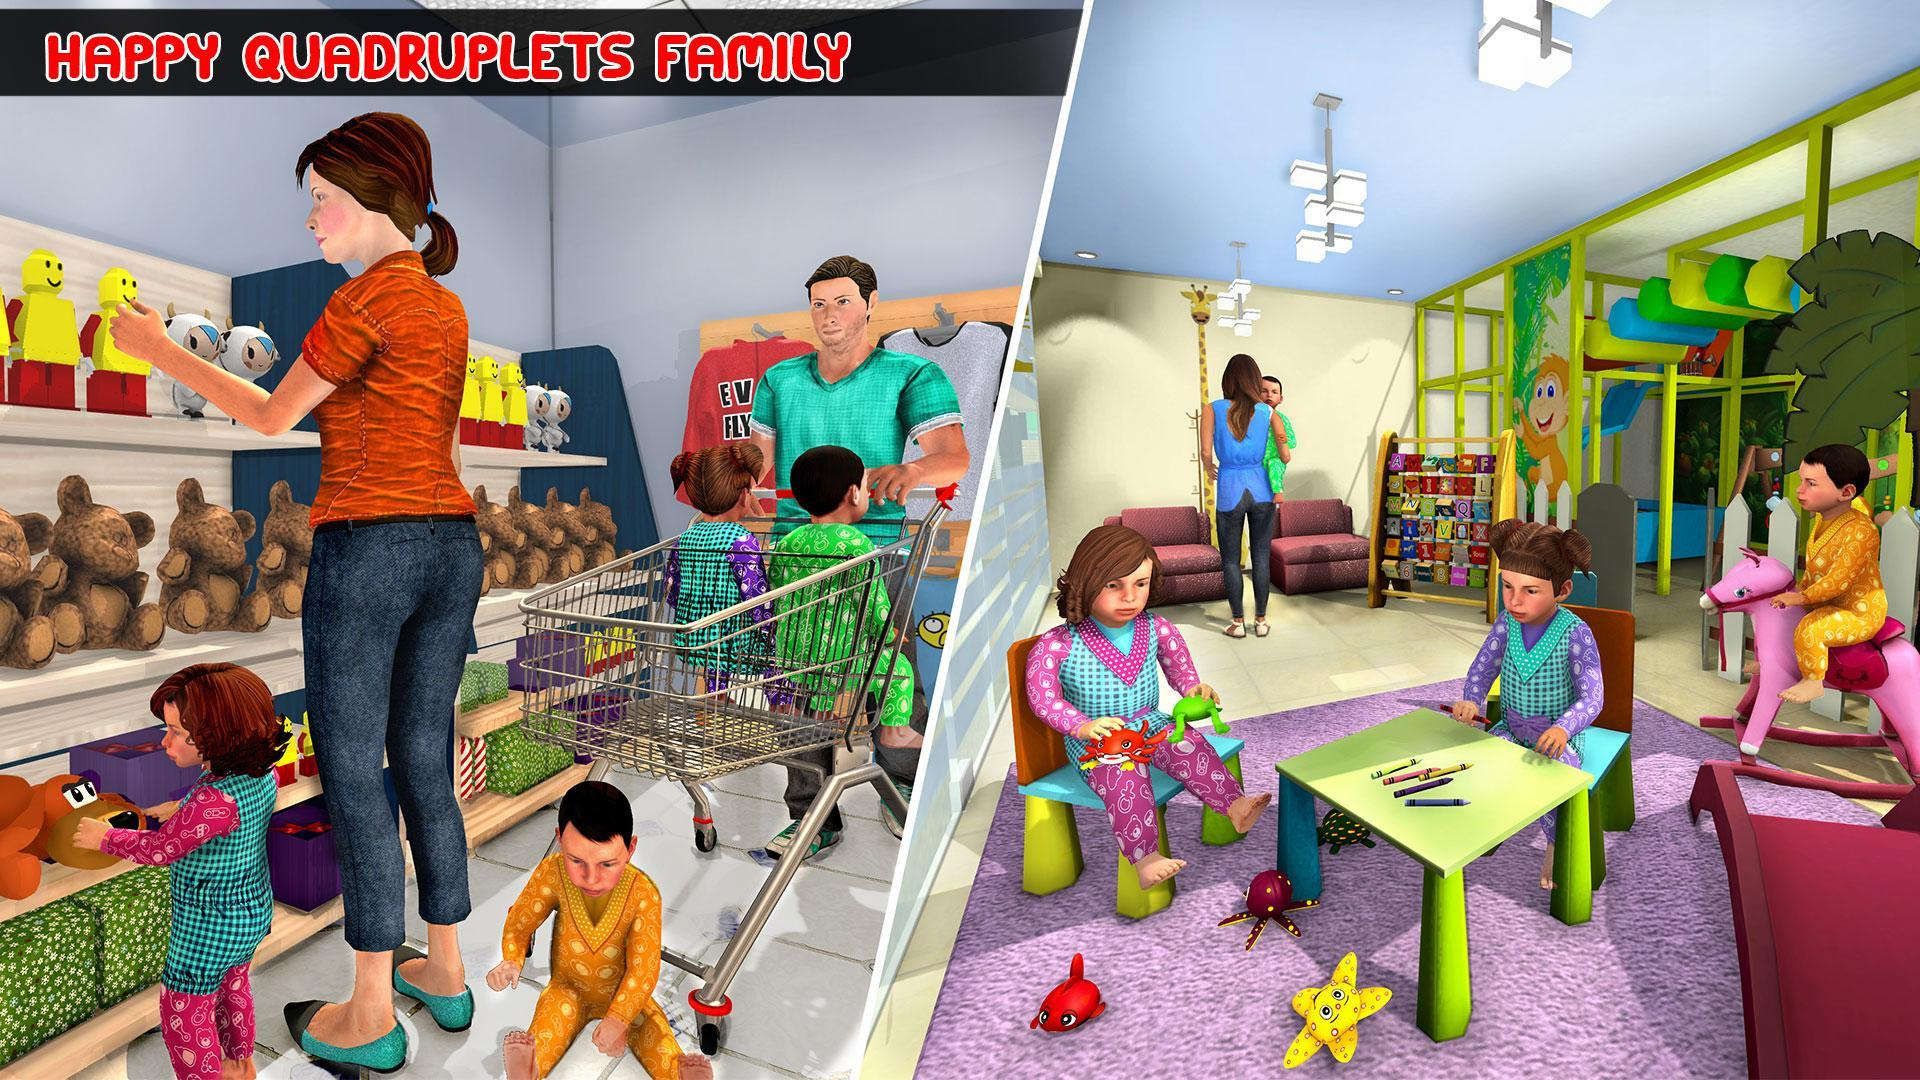 Virtual Mother Baby Quadruplets Family Simulator 1.0.9 Screenshot 6